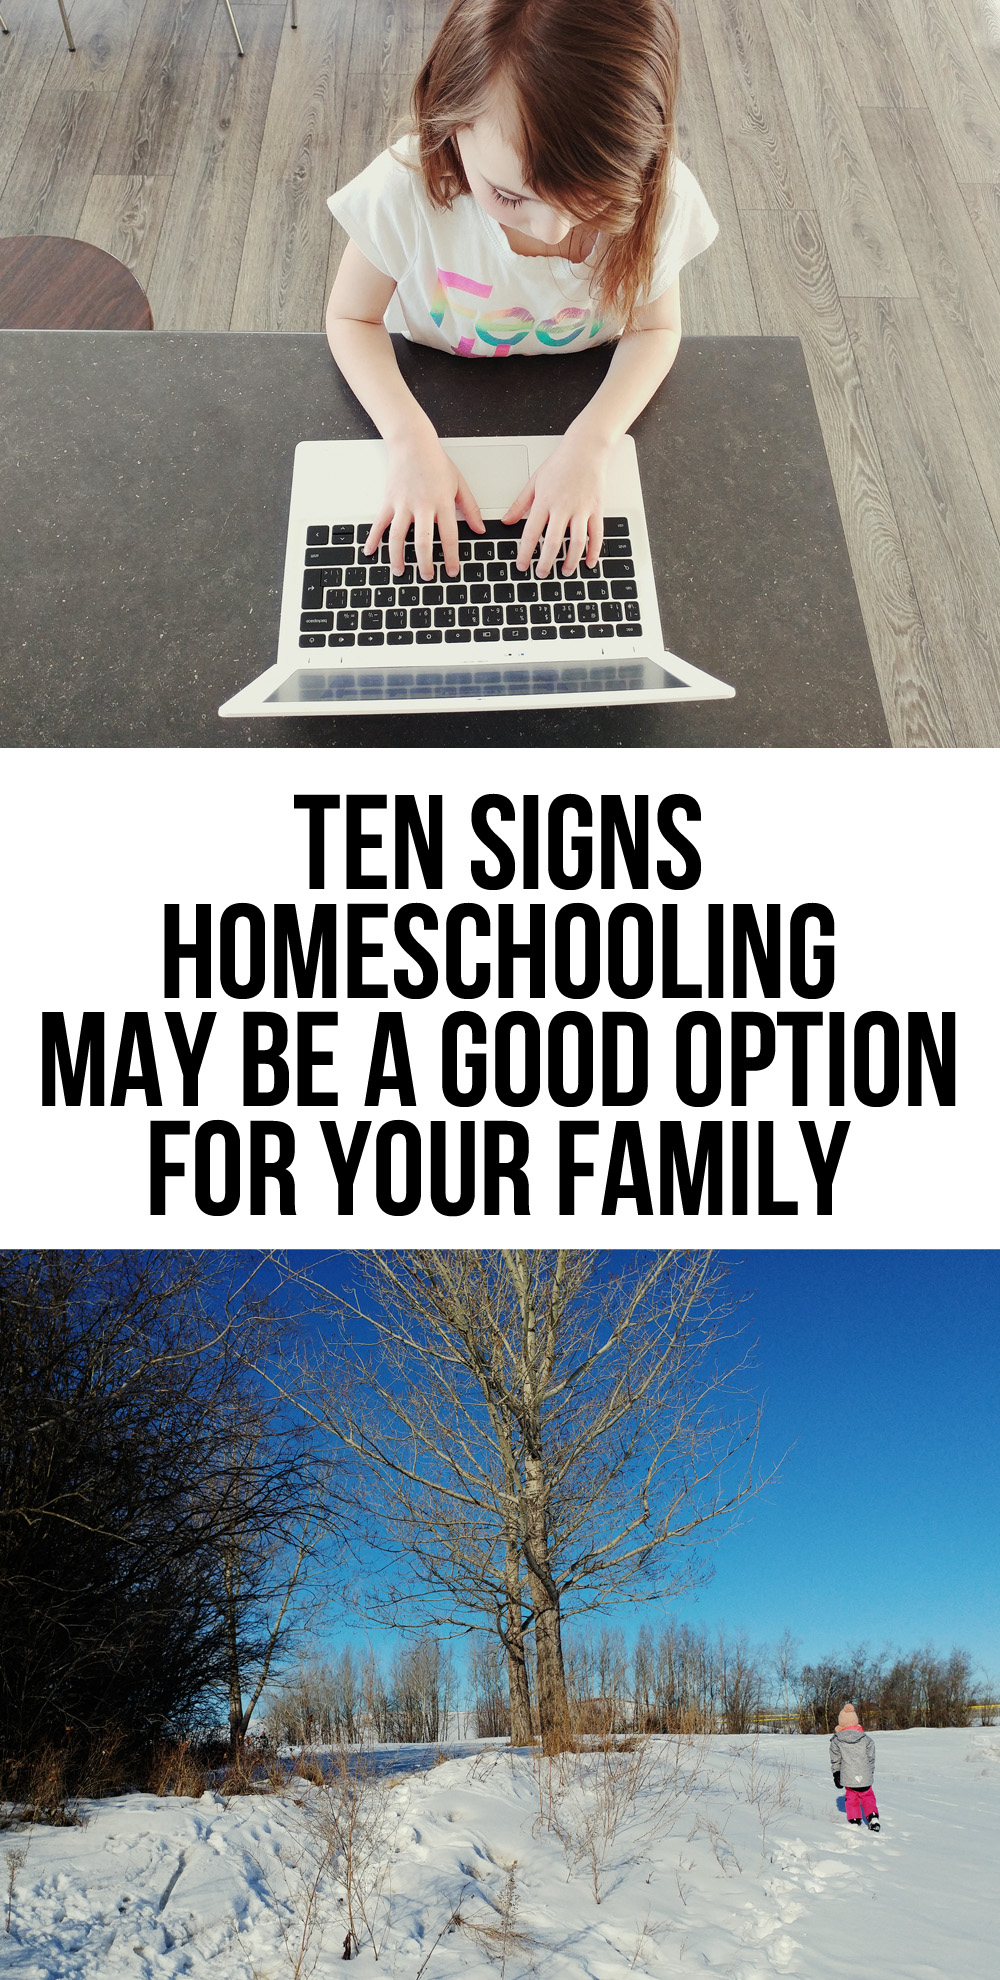 Wondering if homeschooling is the best option for your family? Here are ten signs that homeschooling may be the best option for your family.